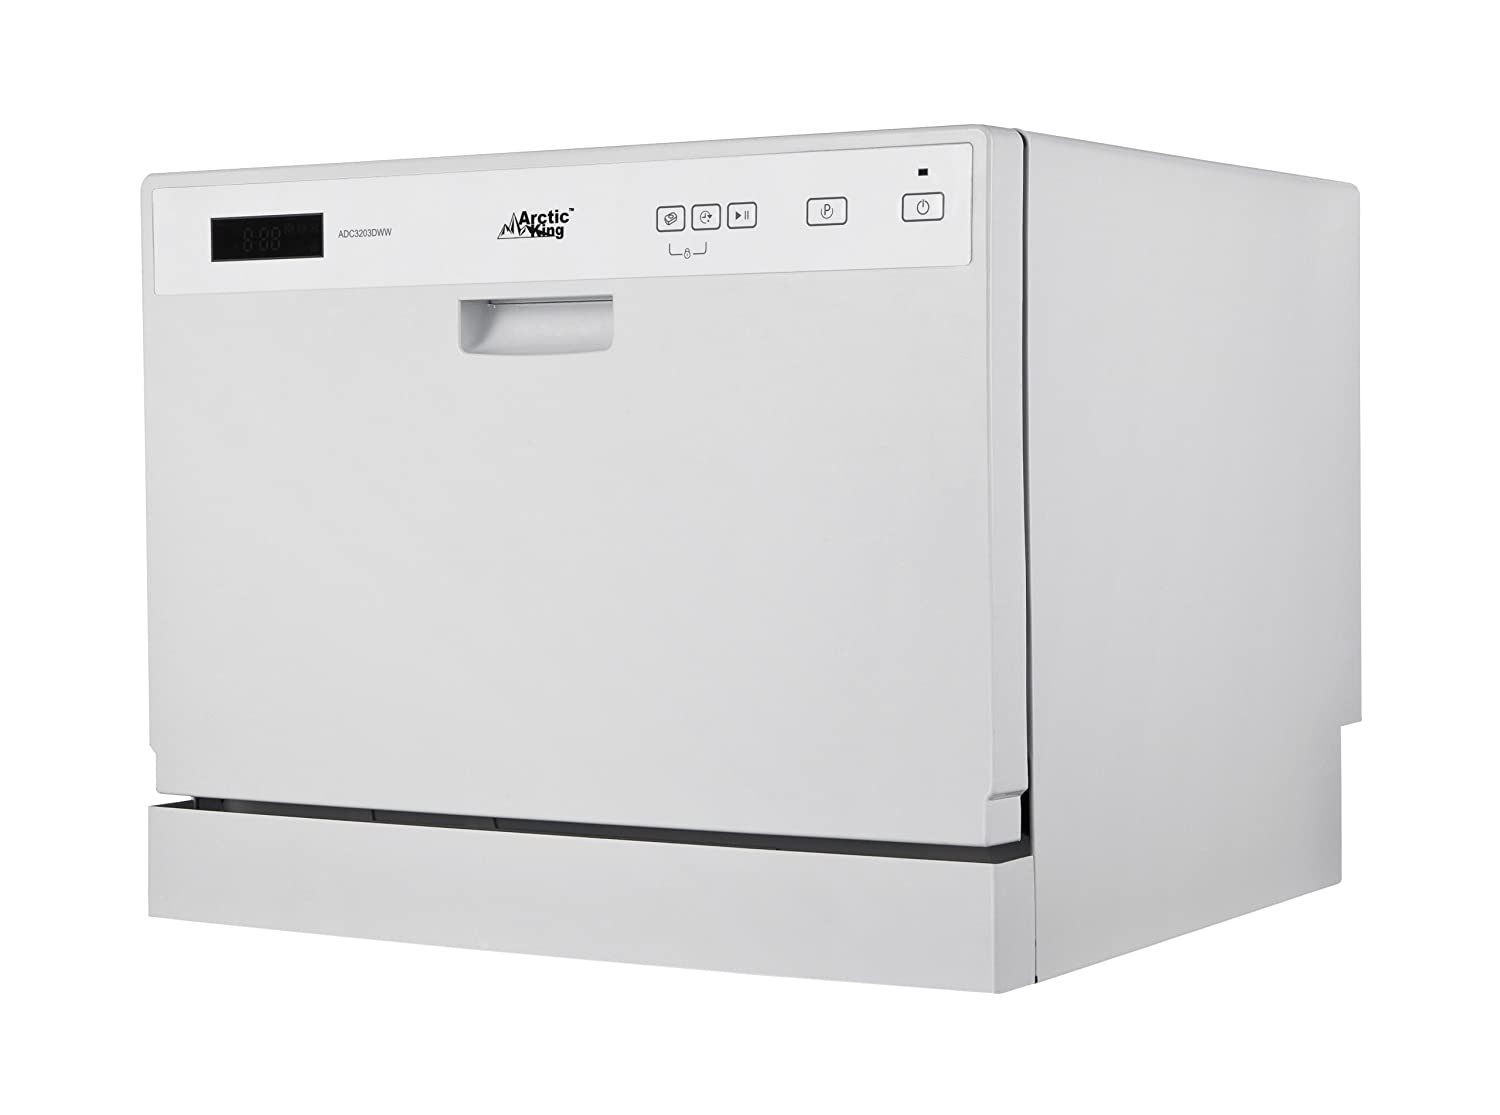 midea Arctic King ADC3203D Countertop Dishwasher, White